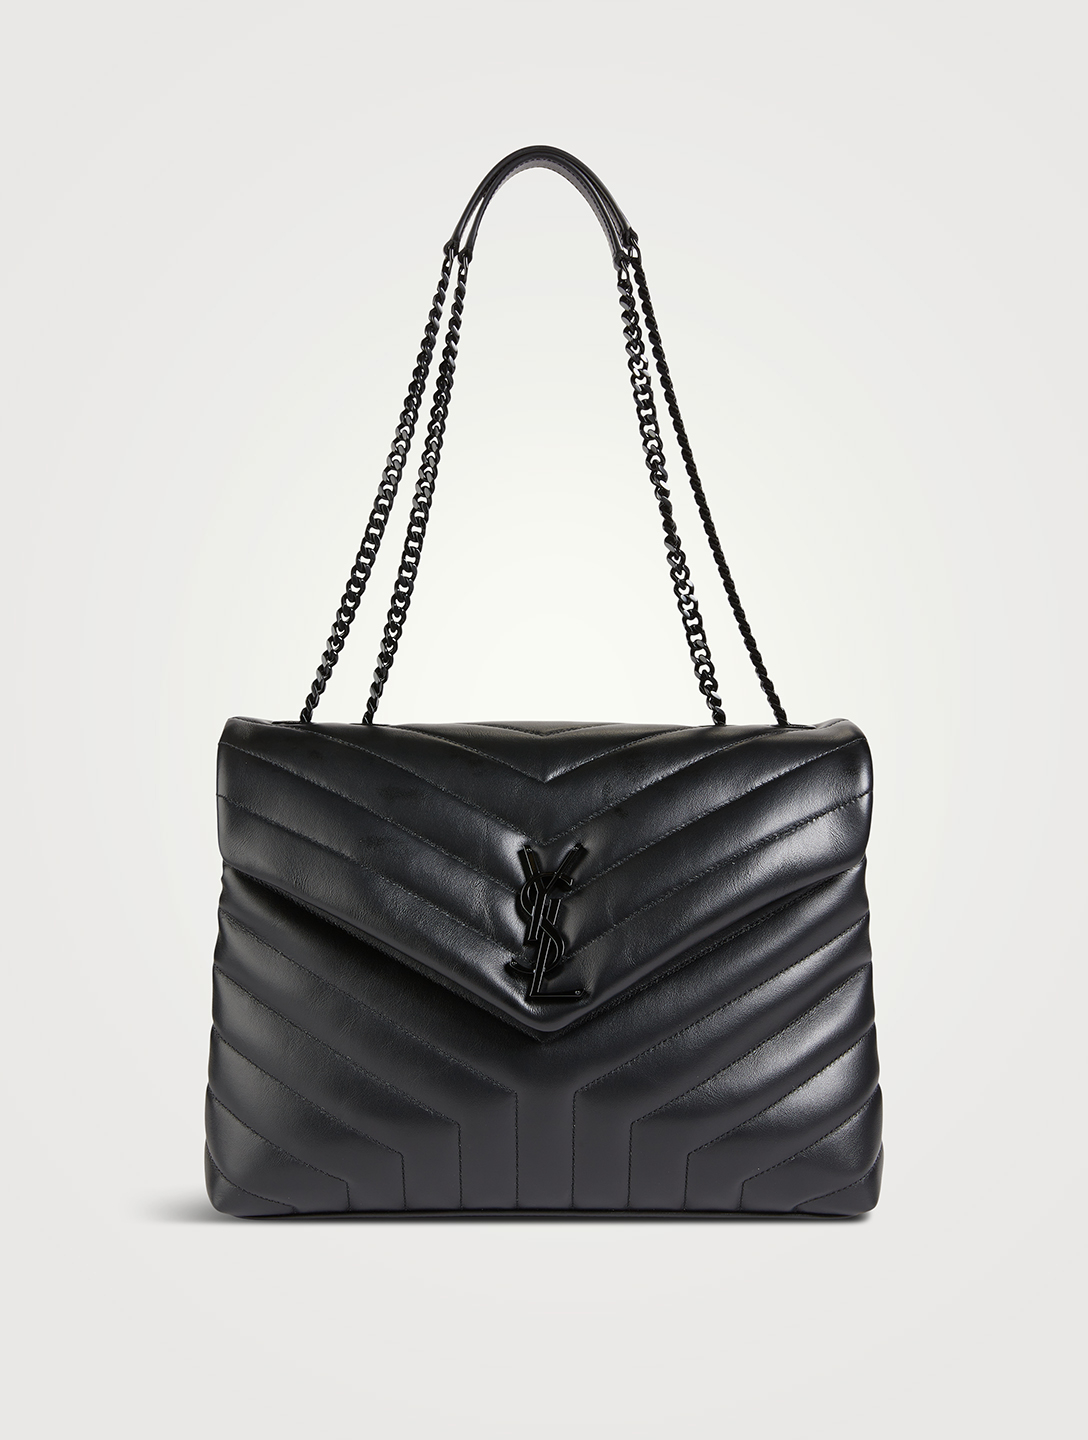 SAINT LAURENT Medium Loulou YSL Monogram Leather Chain Bag Women's Black